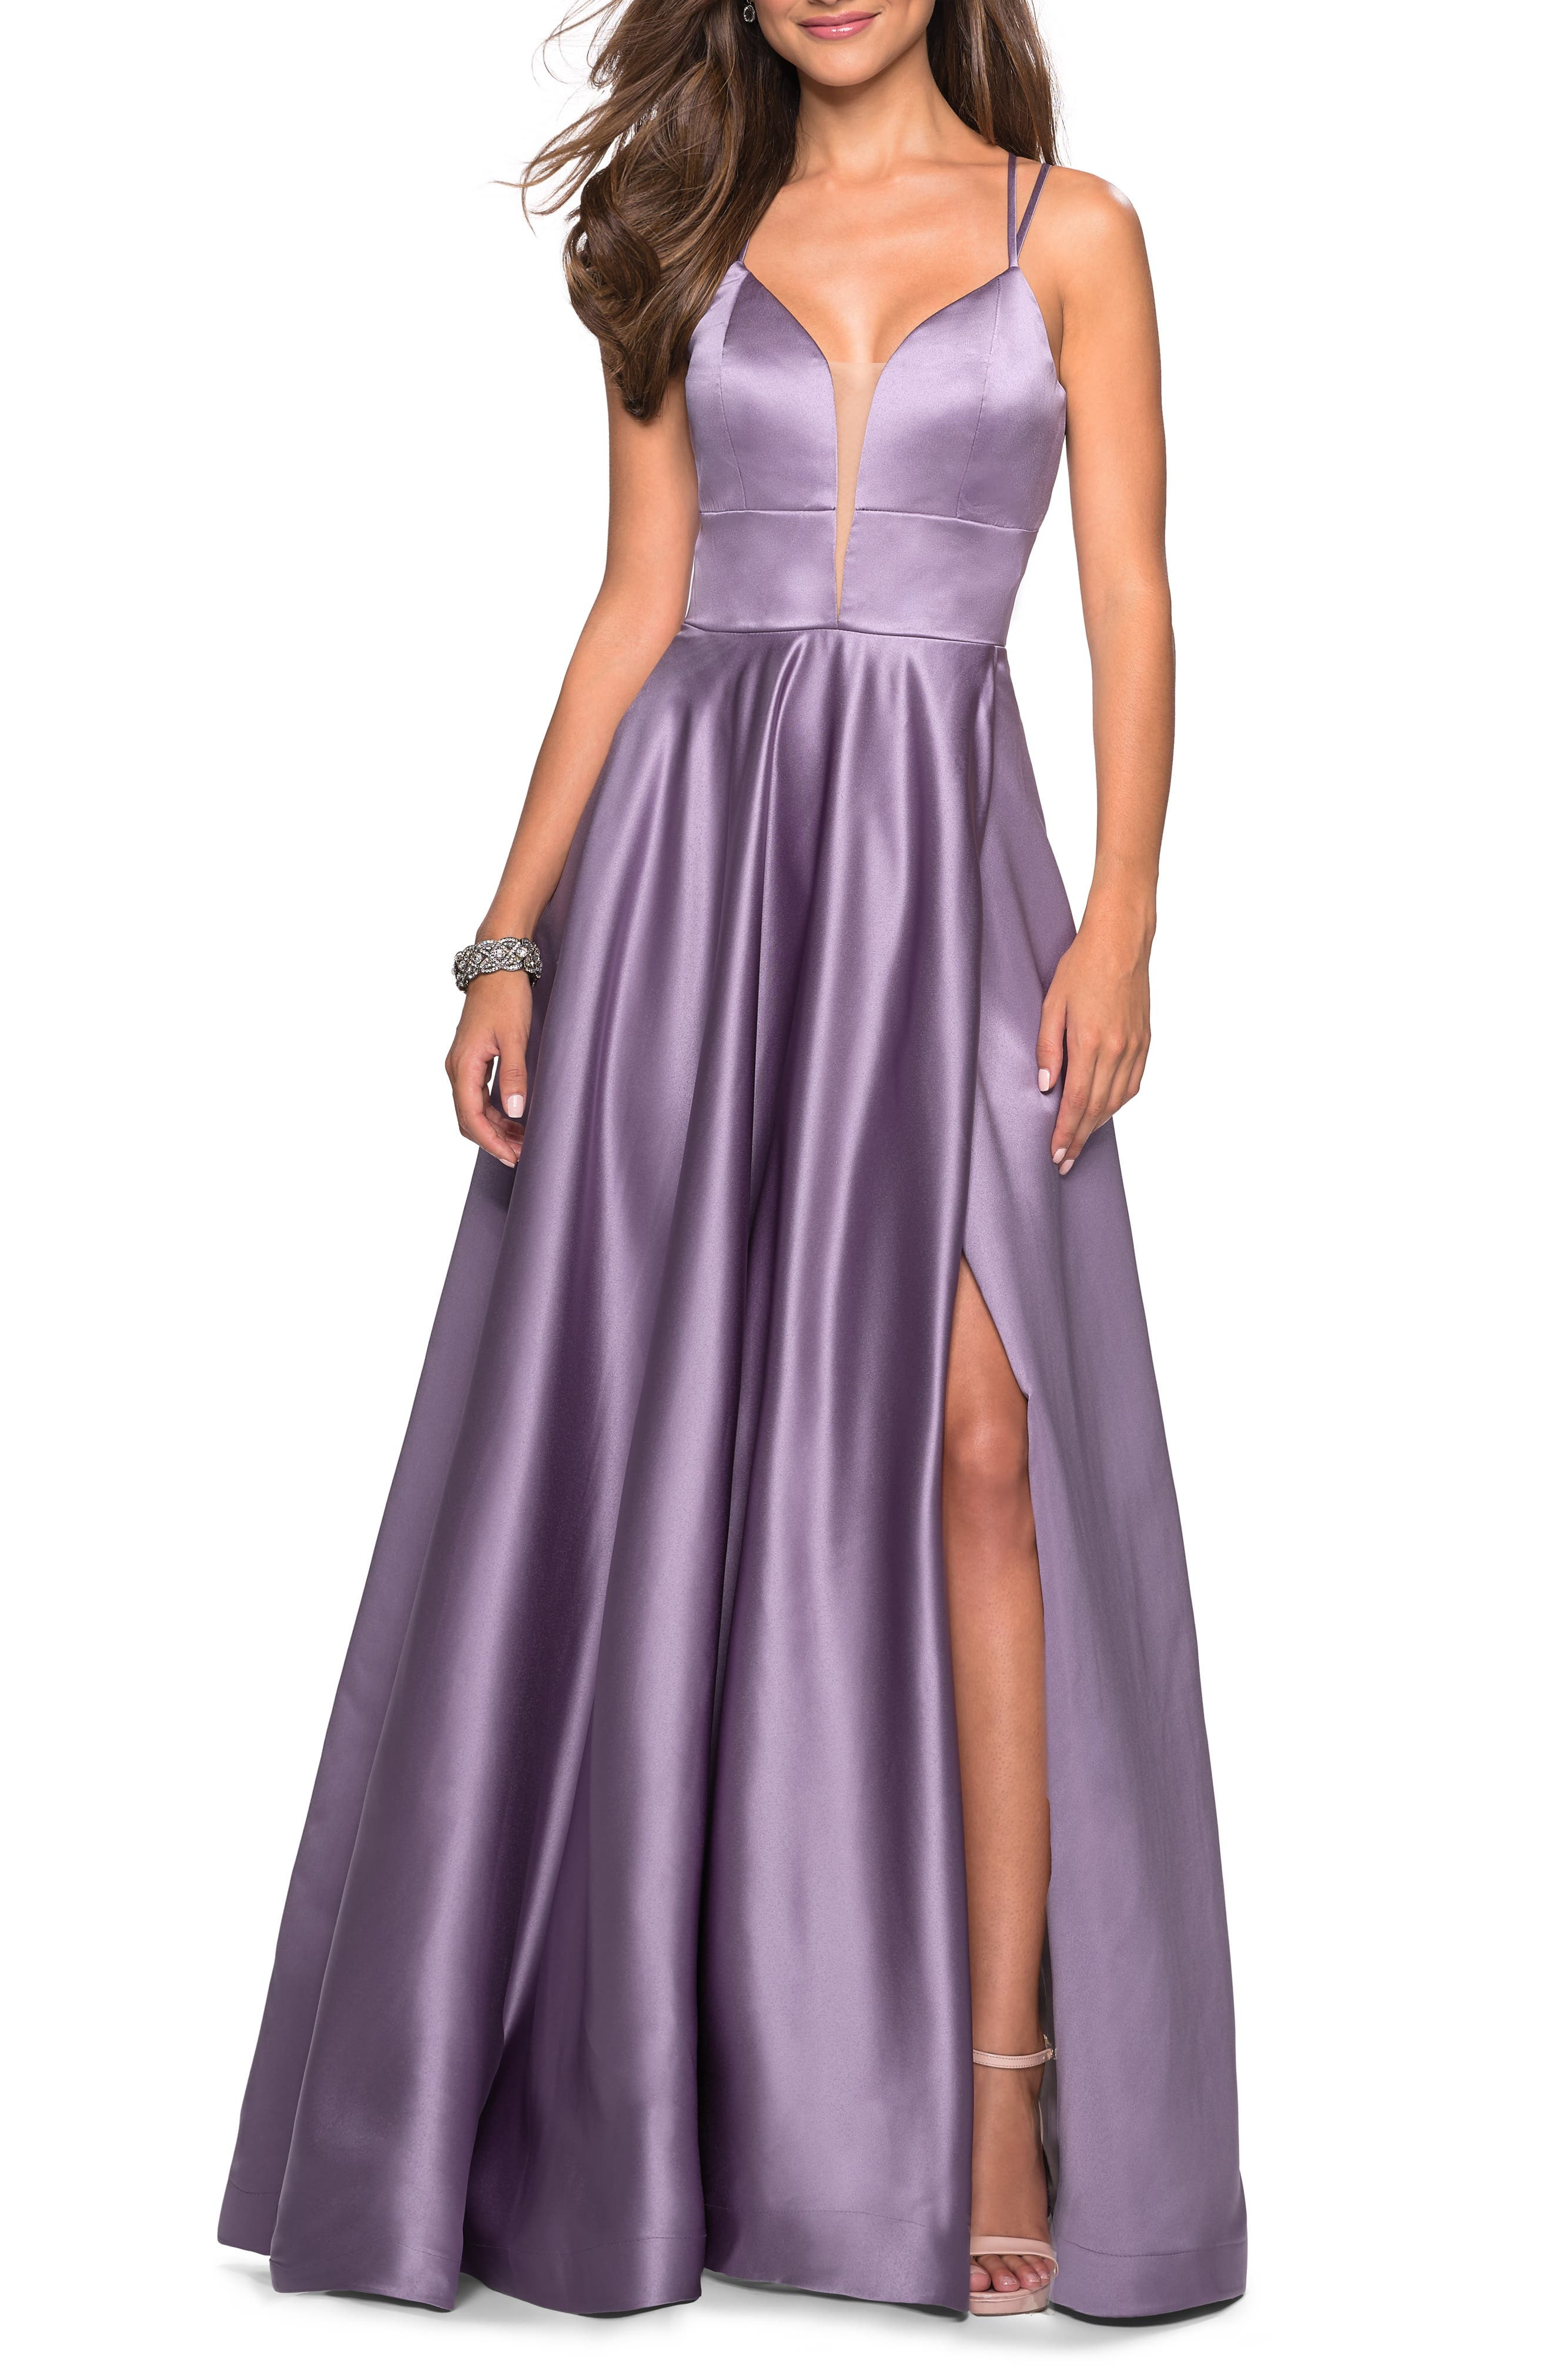 La Femme Strappy Back Satin Evening Dress, Purple